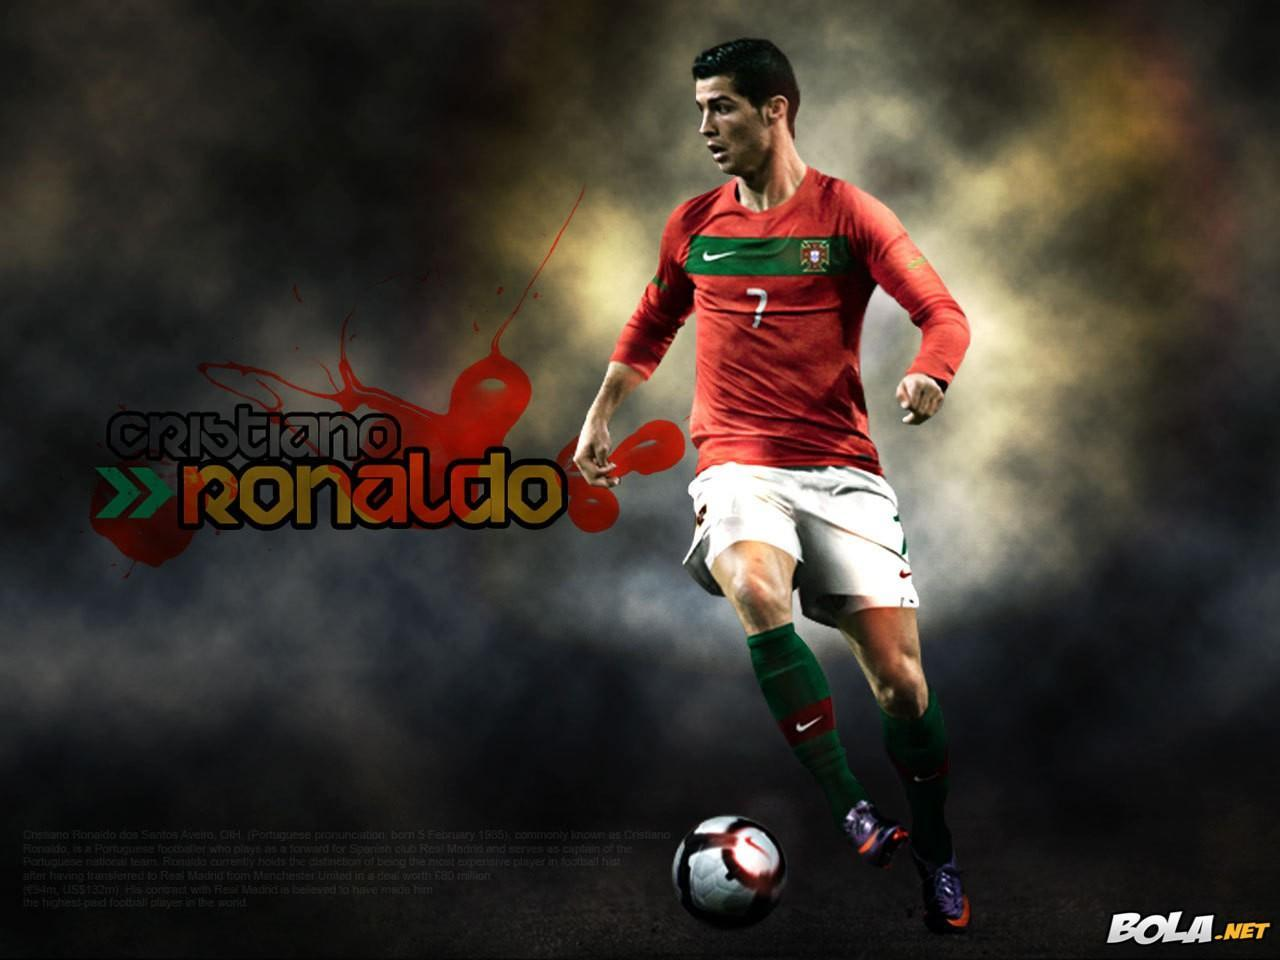 Football Wallpapers Cristiano Ronaldo